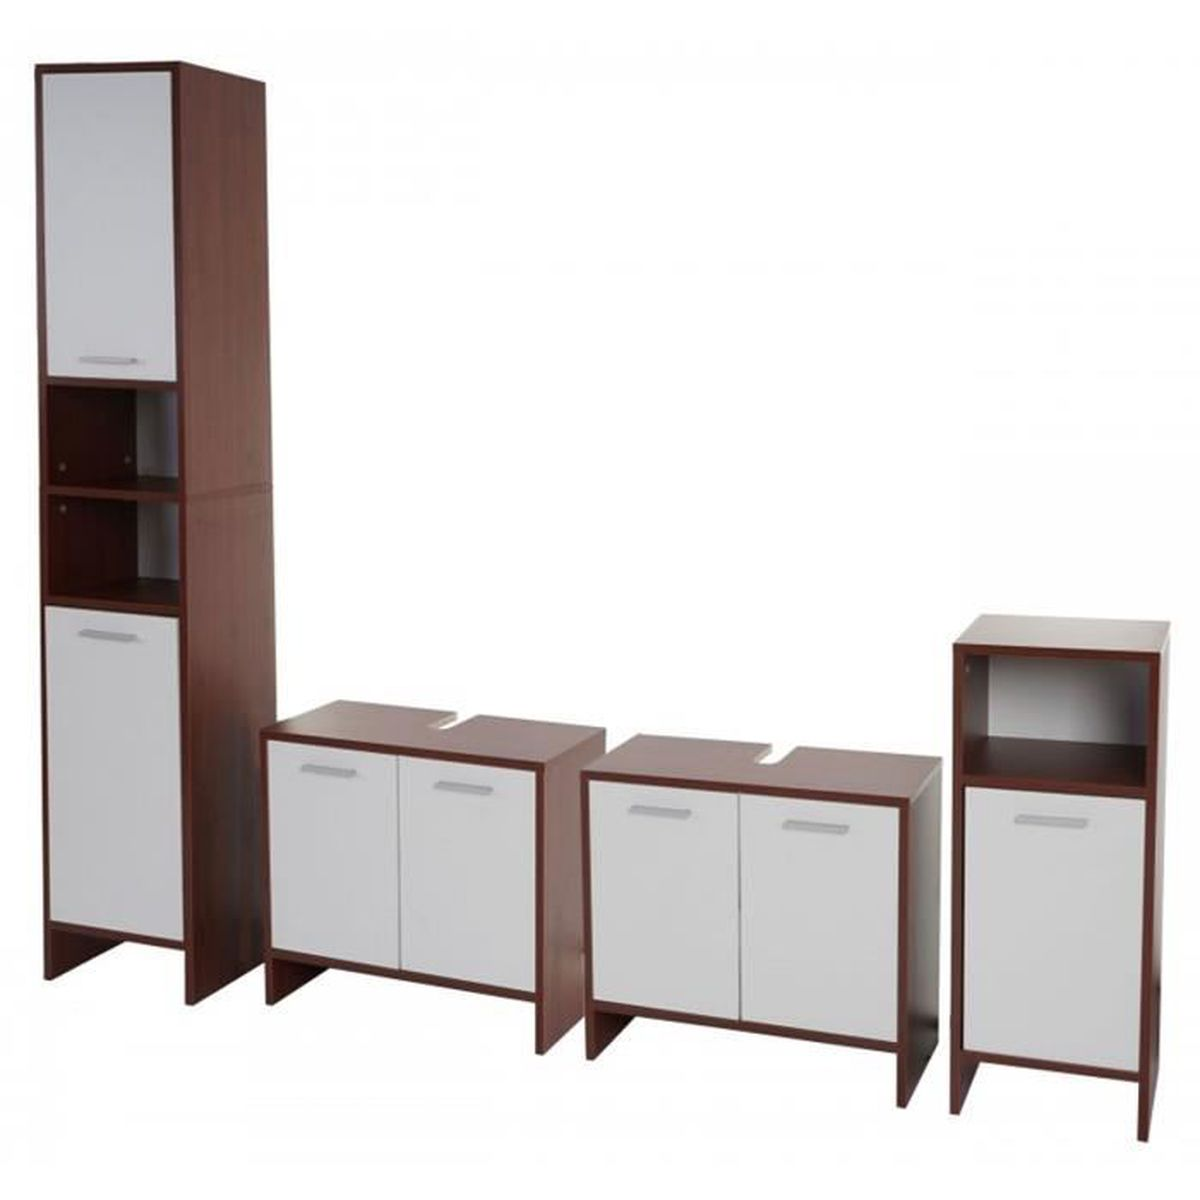 ensemble de salle de bain en bois coloris brun et blanc. Black Bedroom Furniture Sets. Home Design Ideas